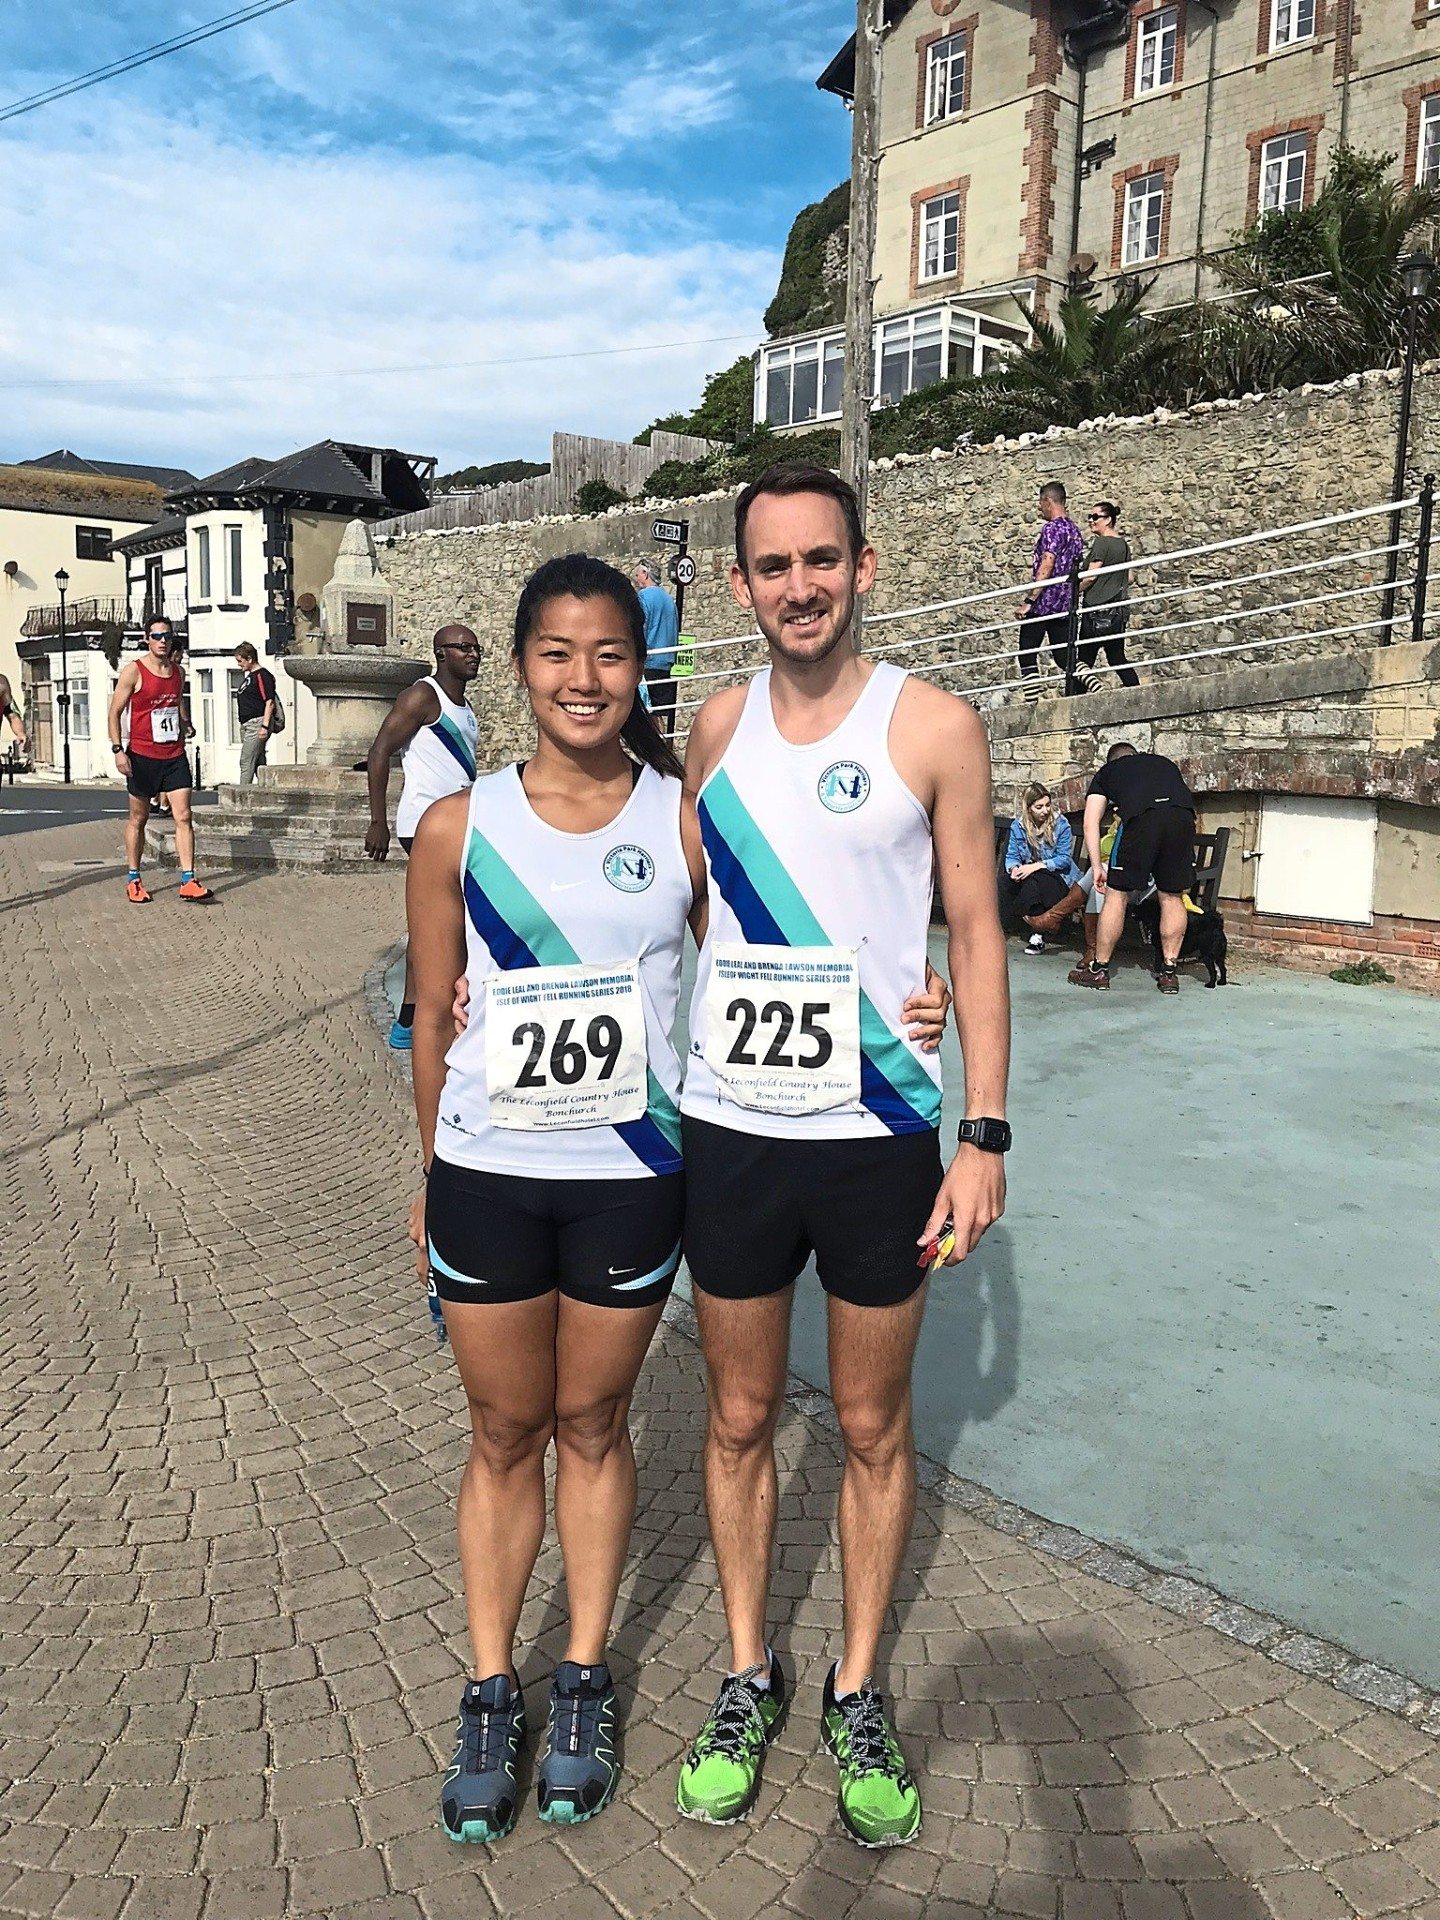 Alison's biggest supporter is her husband, Matt Walker, who is also an avid runner. They are seen here at The Isle of Wight Fell Race, Britain in Sept 2017.